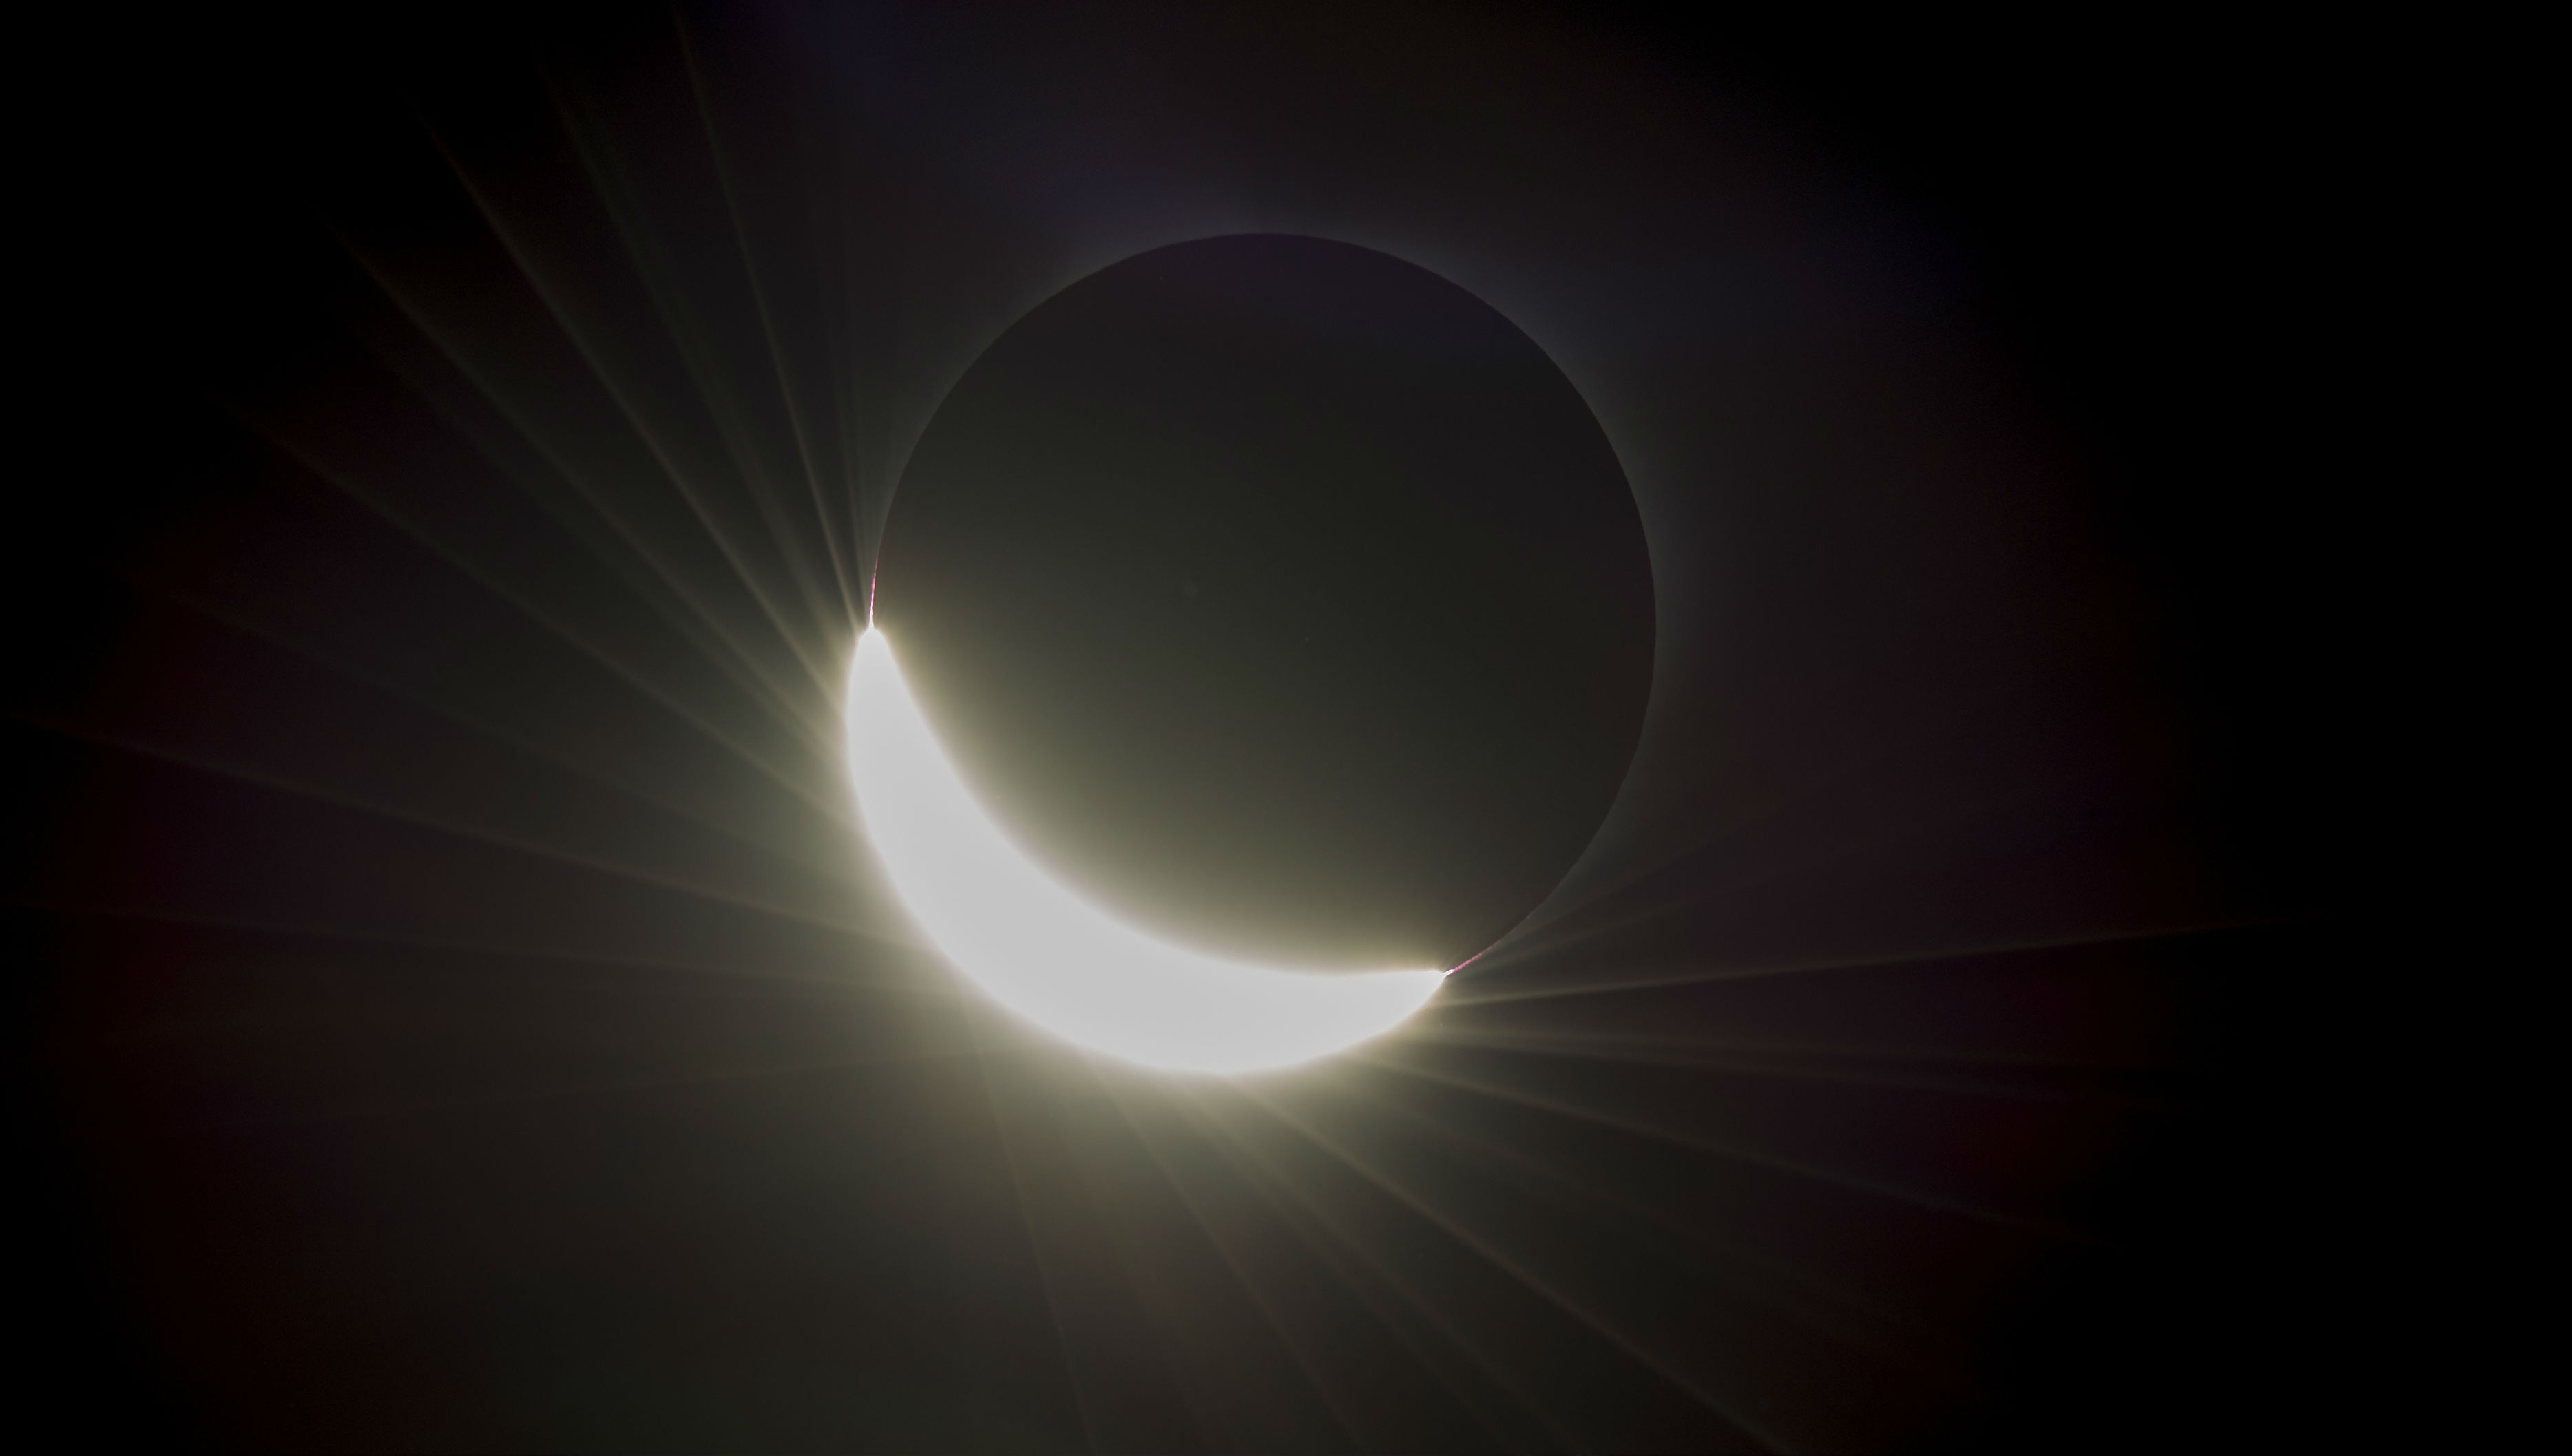 The sun eclipsed by the moon